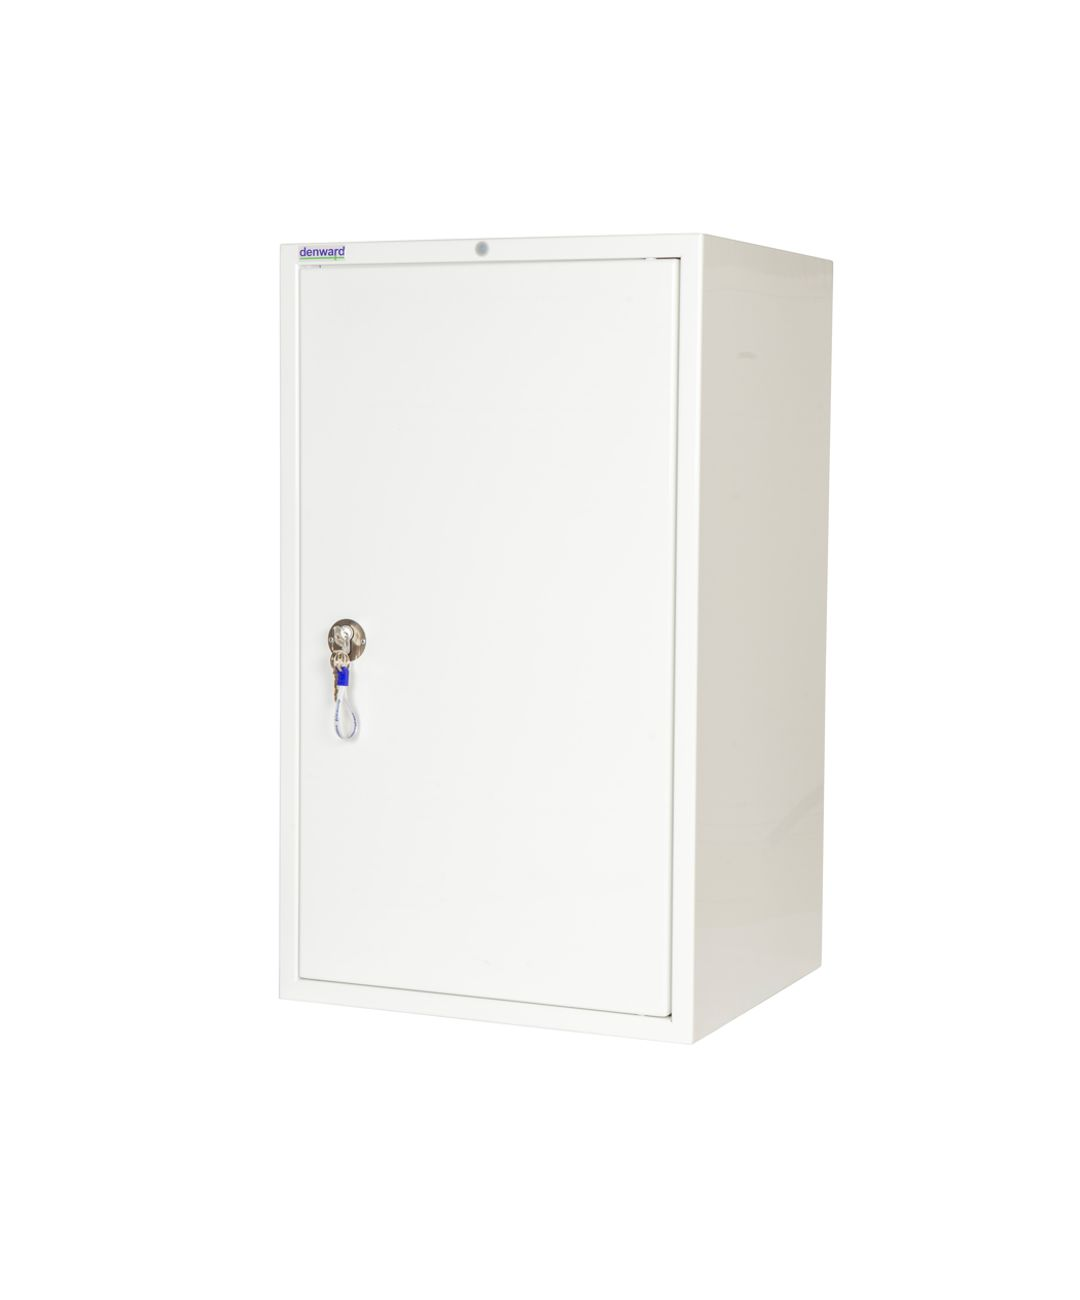 Controlled Drug Cabinet (CDC850) W500 x H850 x D450